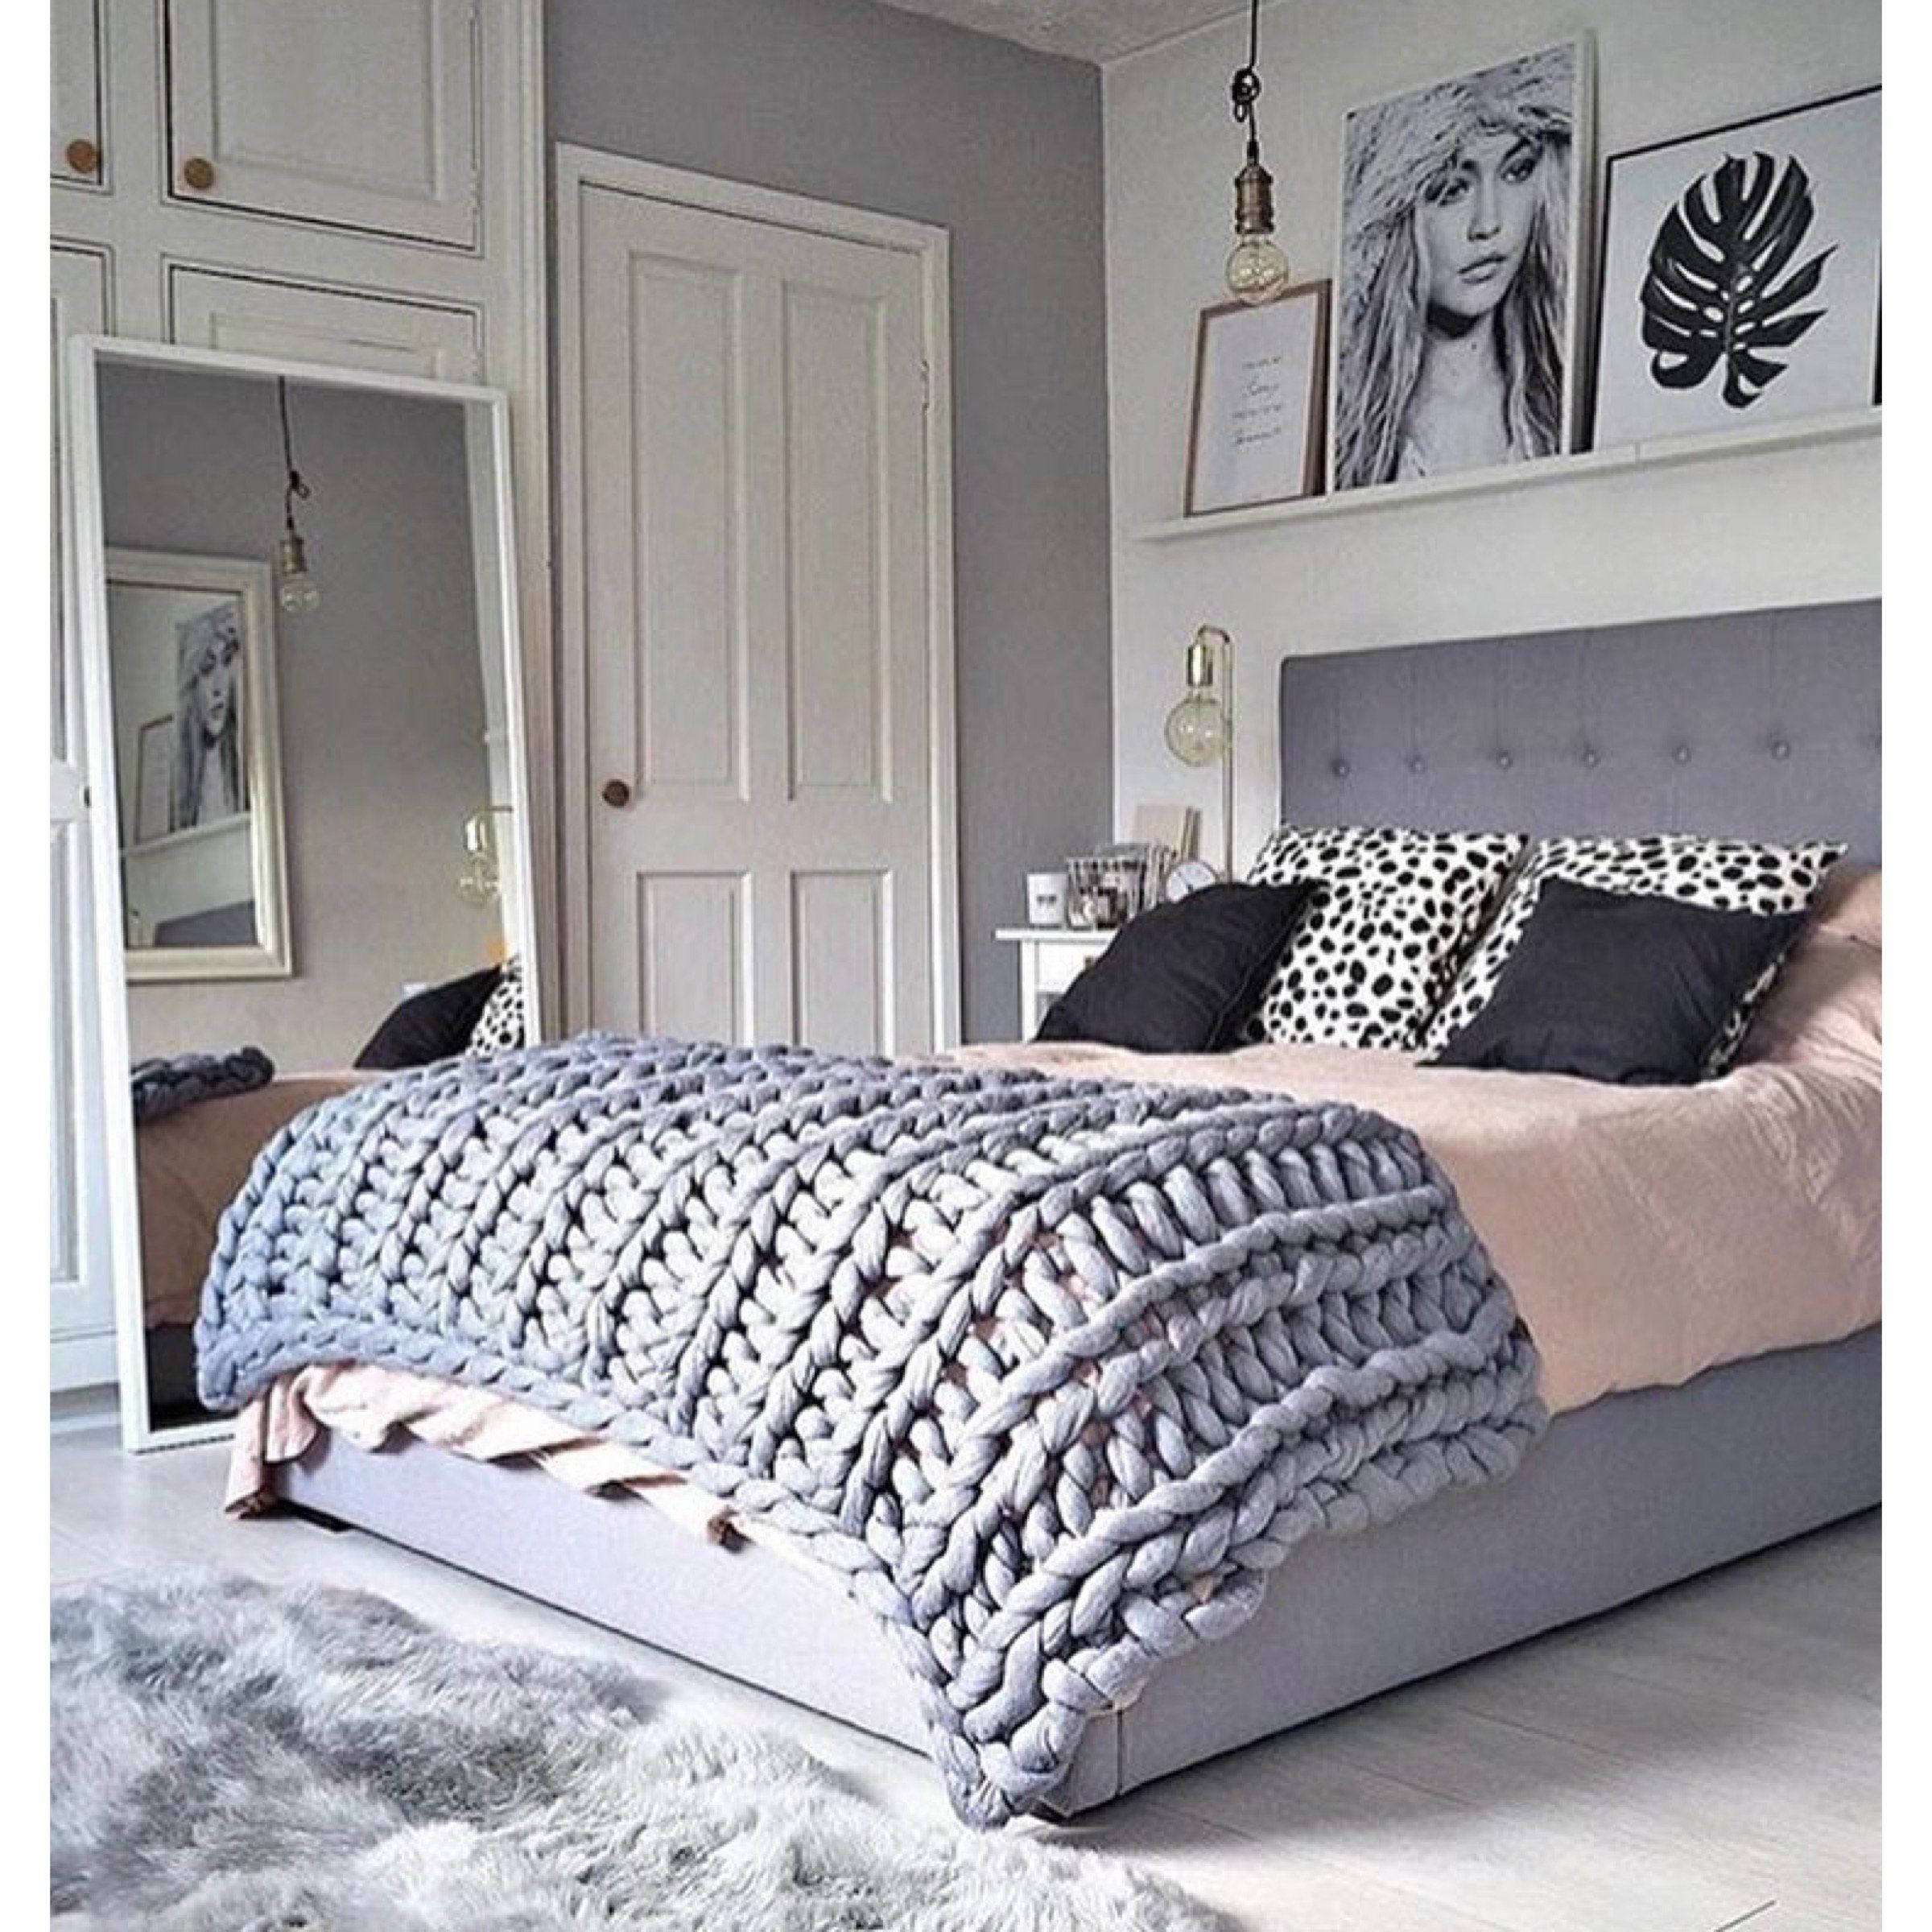 Chunky Knit Blanket images